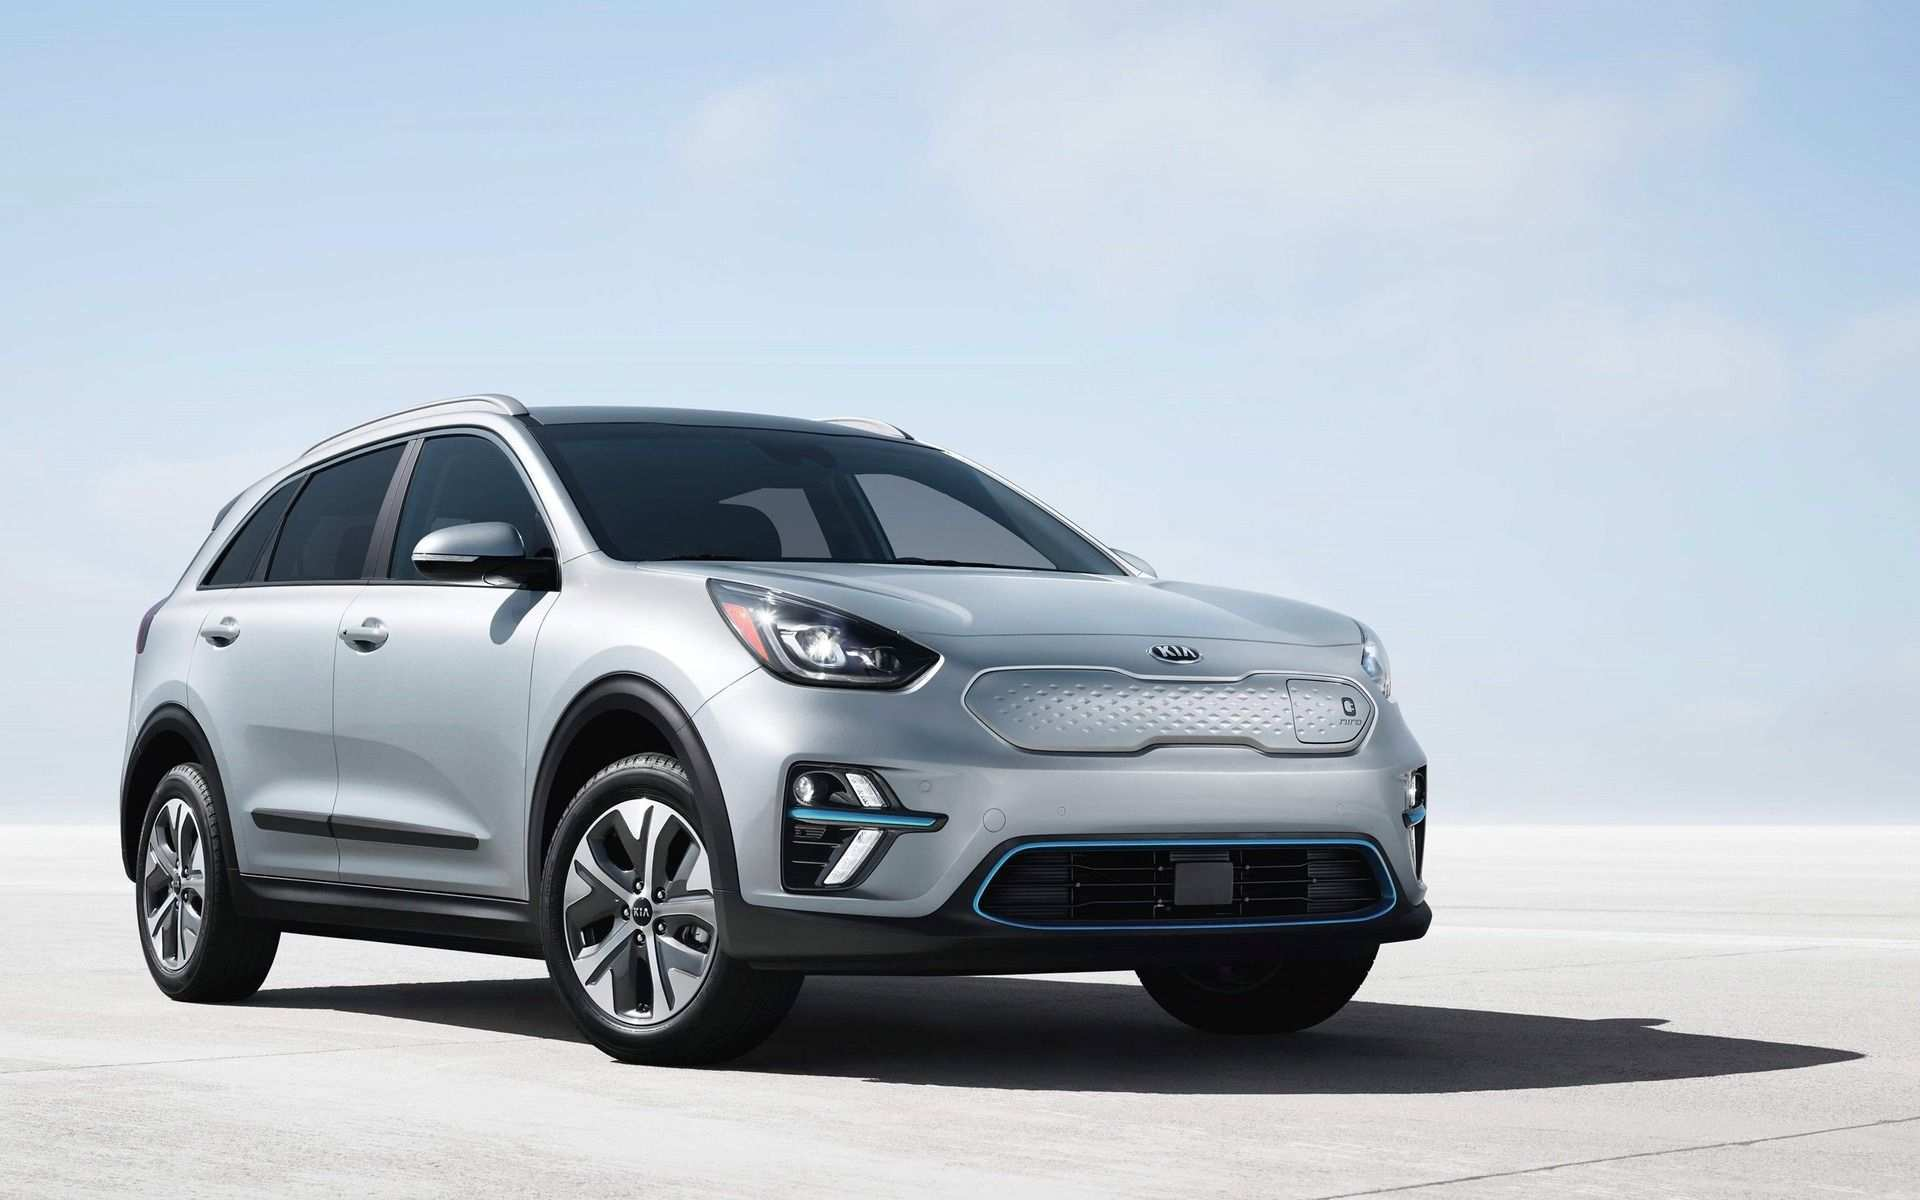 13 All New Kia Niro 2020 Canada Speed Test for Kia Niro 2020 Canada